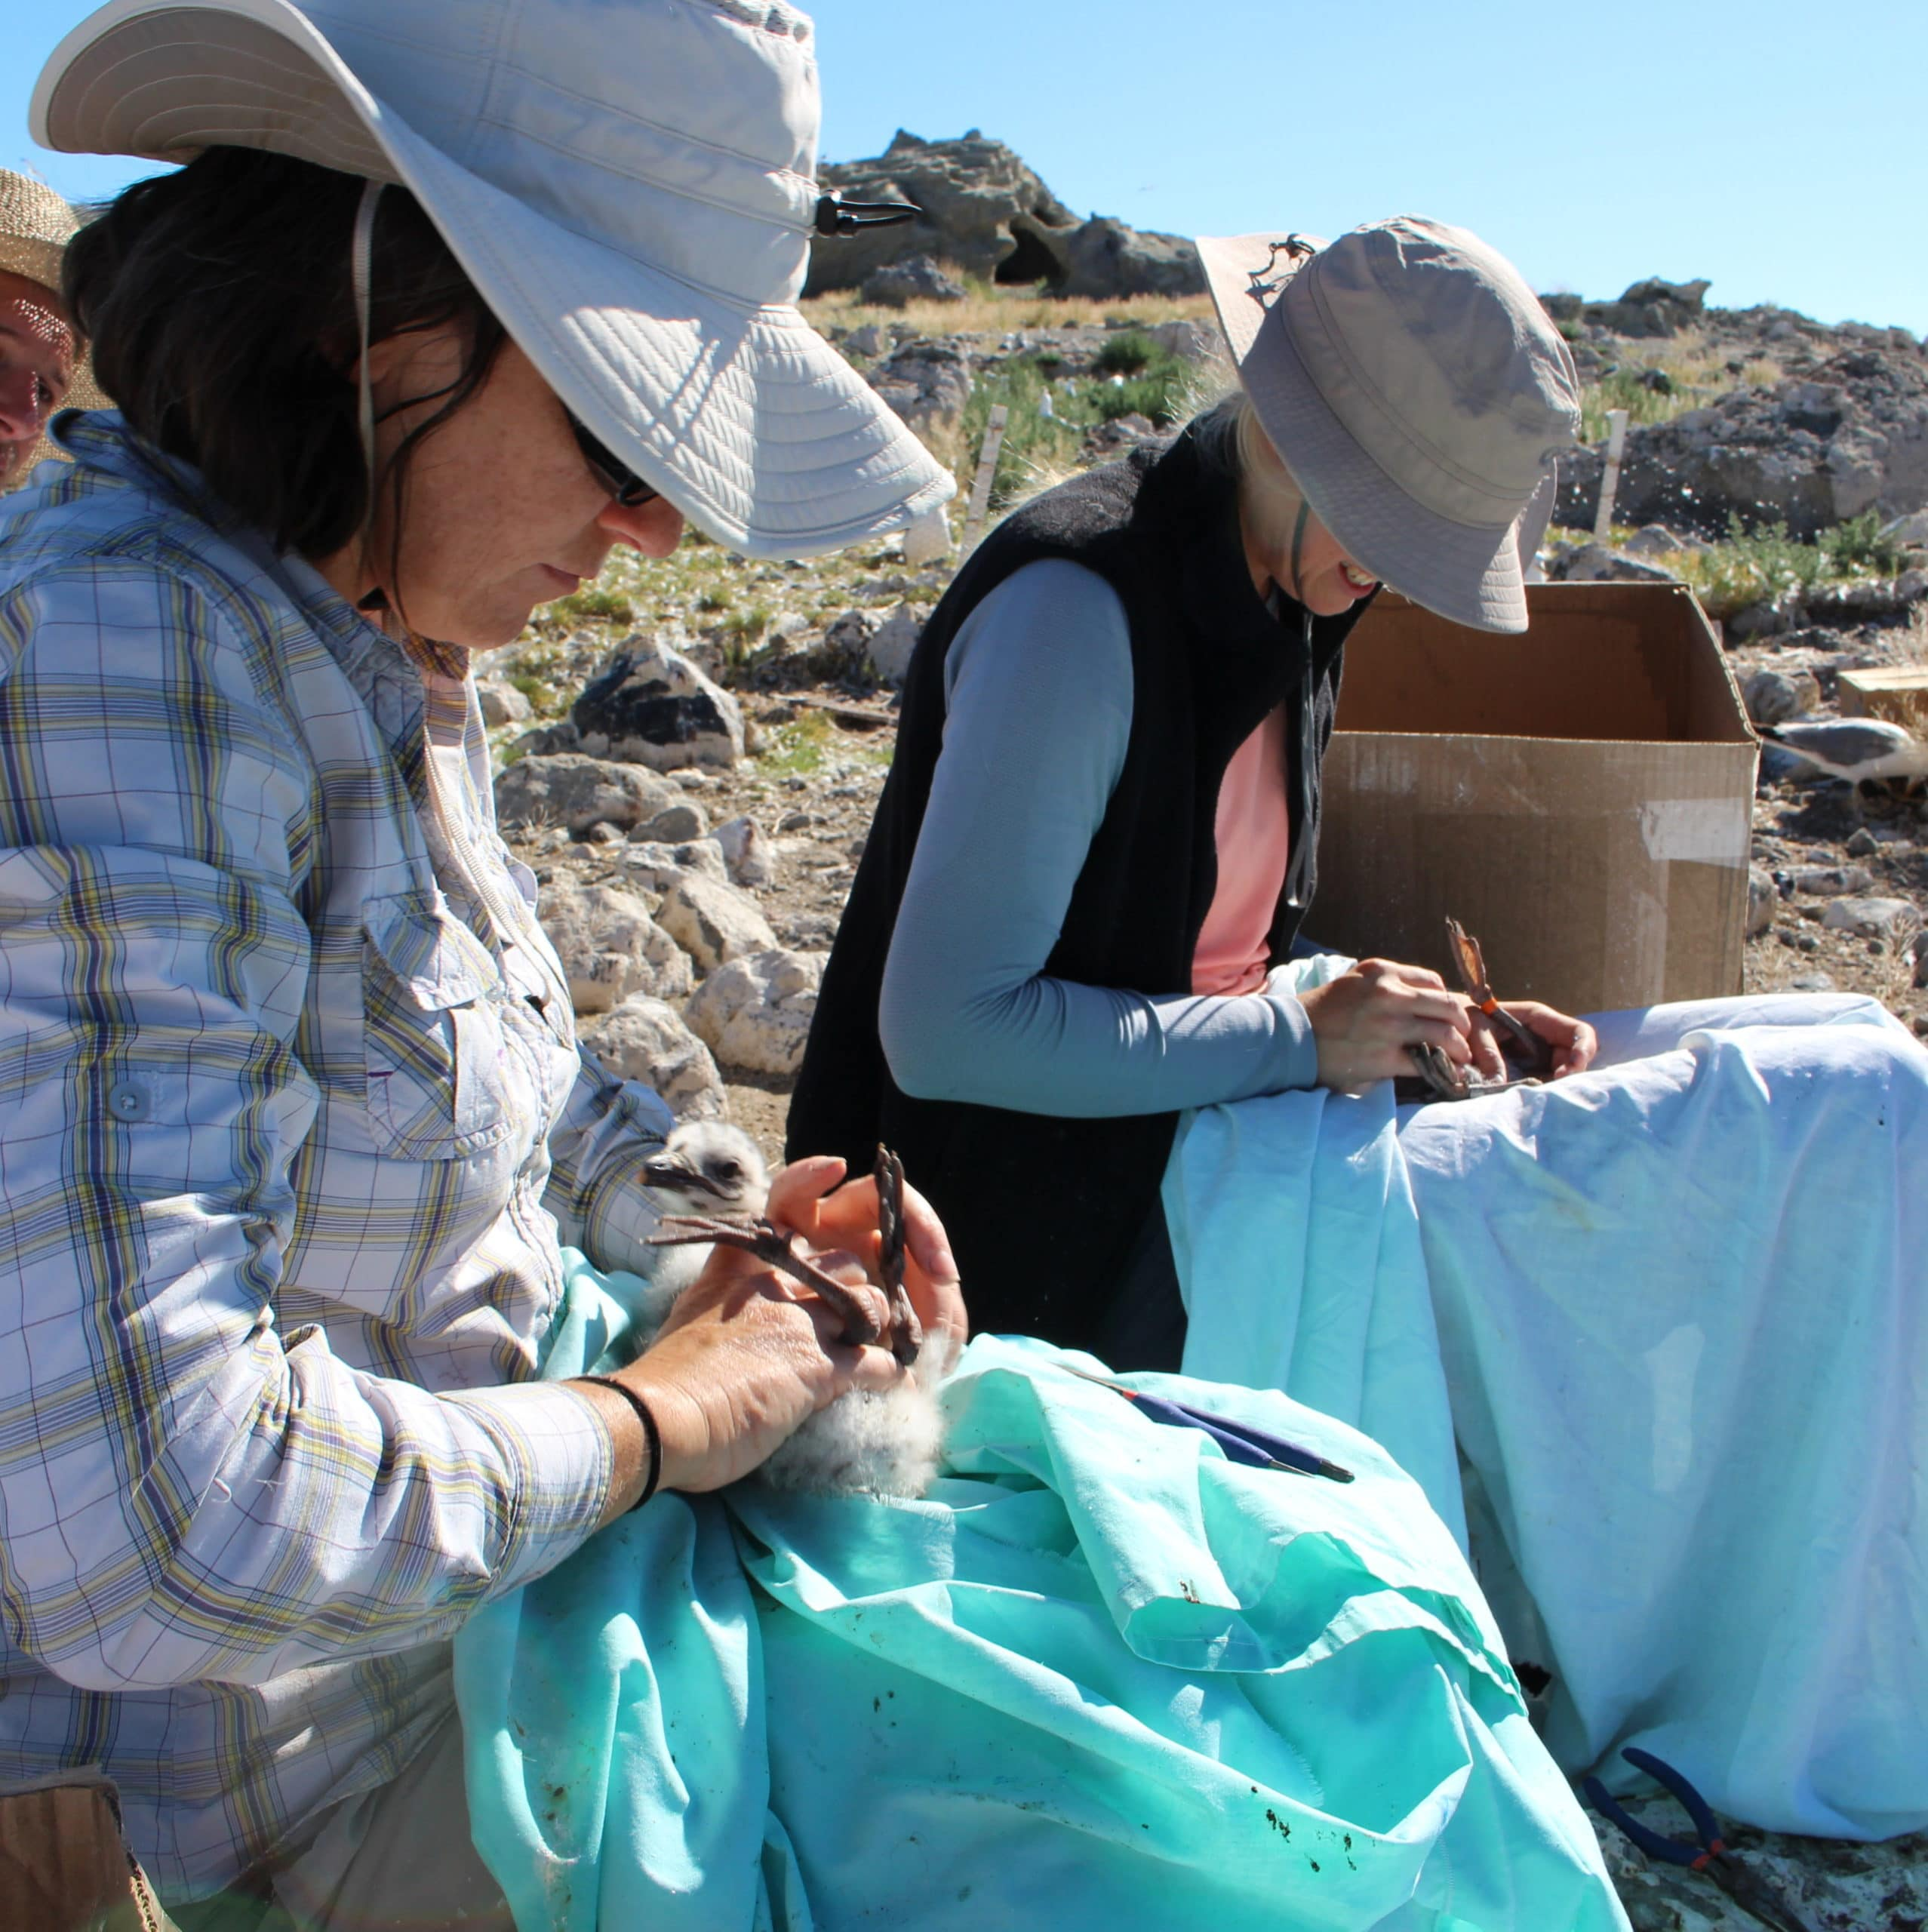 Three researchers, two carefully holding young California Gulls on their laps while getting measurements, and one recording data outside on a nesting colony island in Mono Lake.